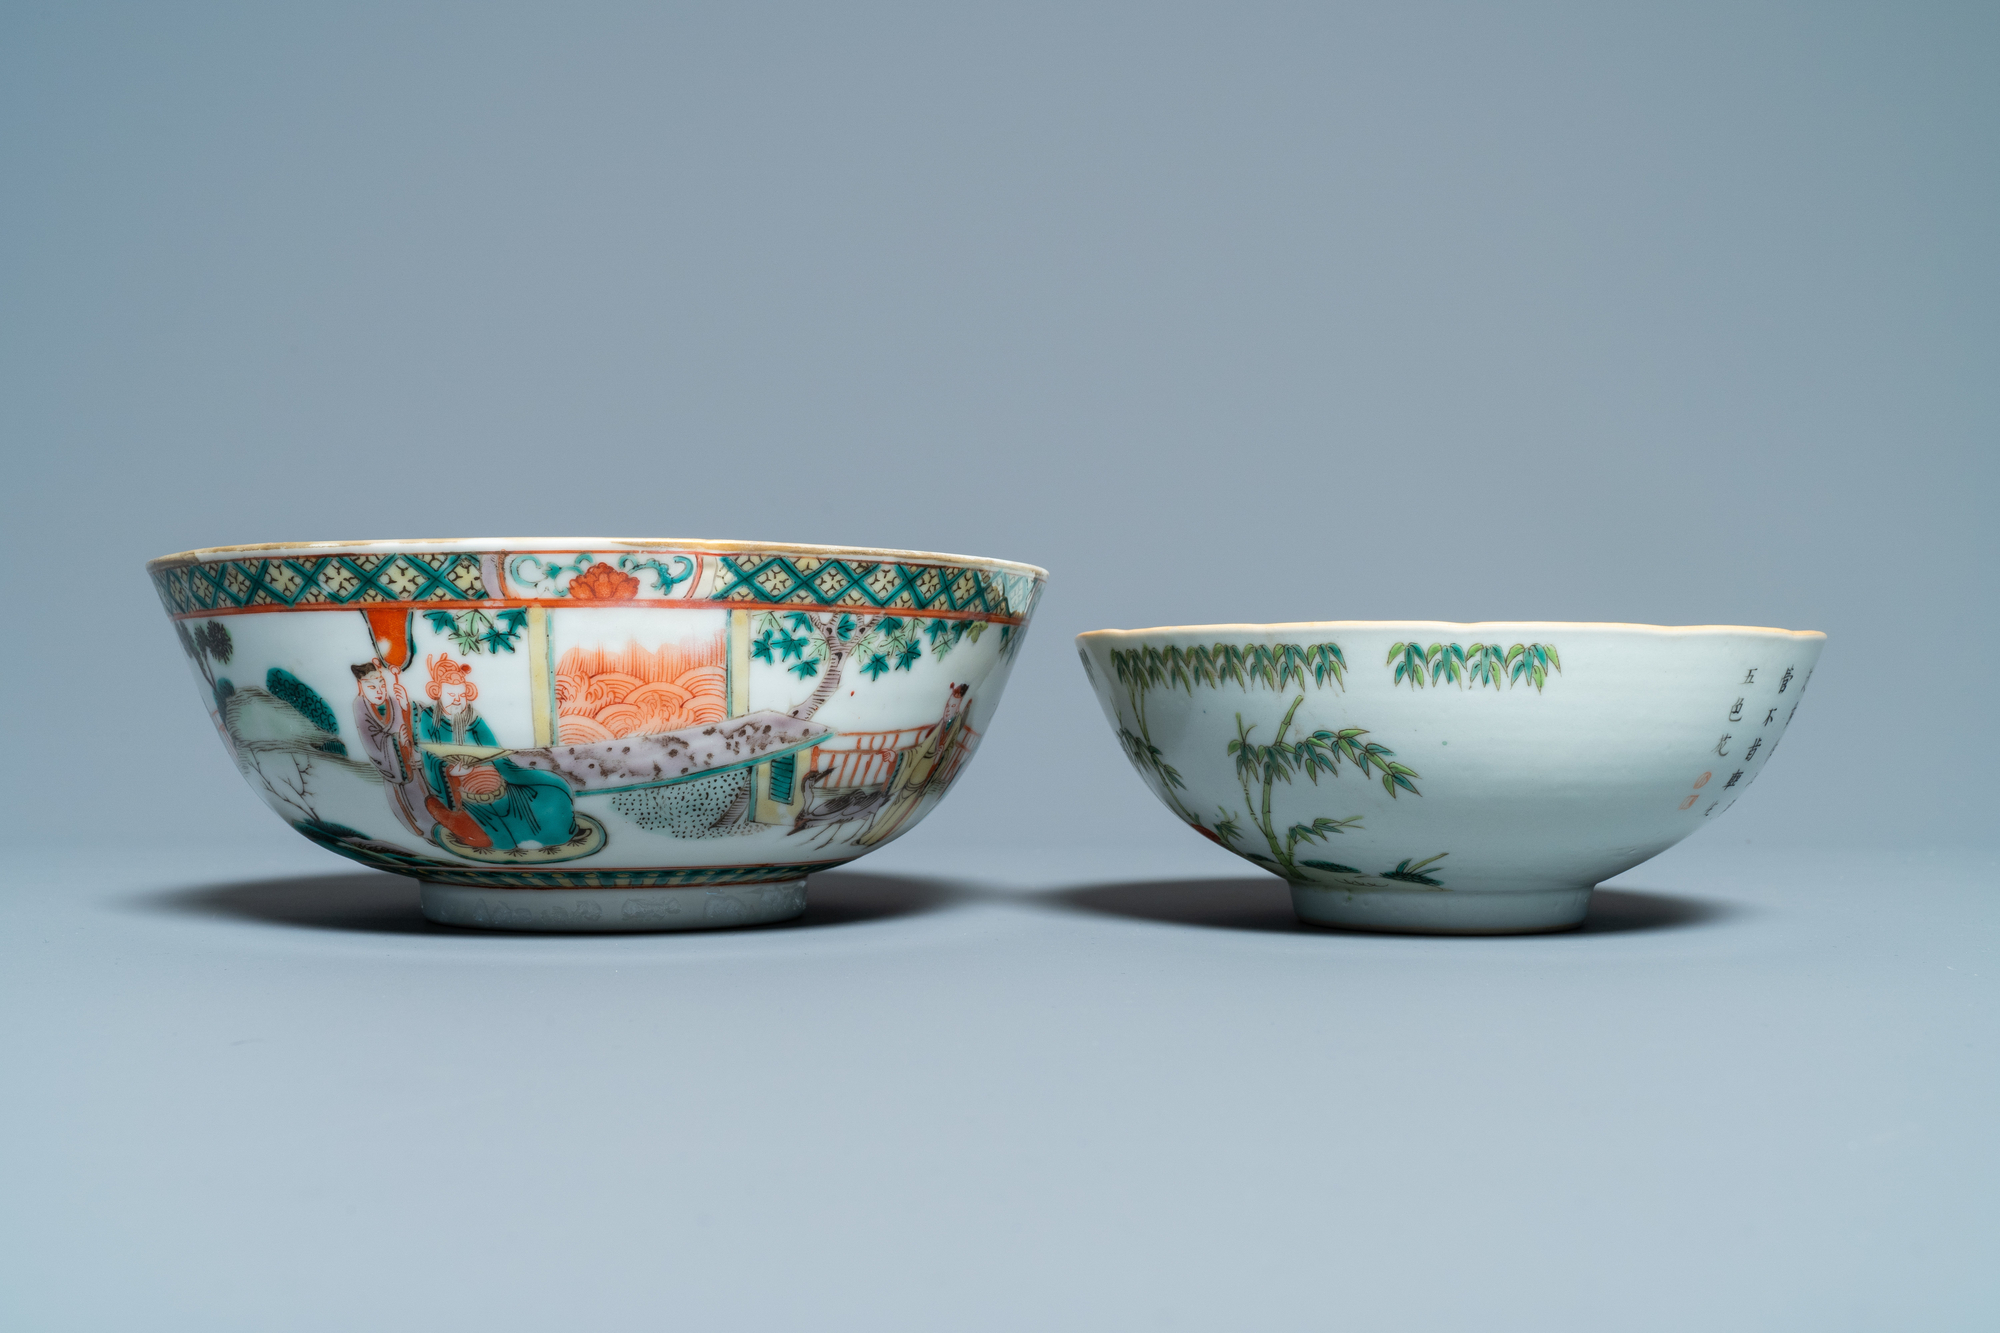 A Chinese blue and white jardiniere and two famille verte bowls, 19/20th C. - Image 9 of 13